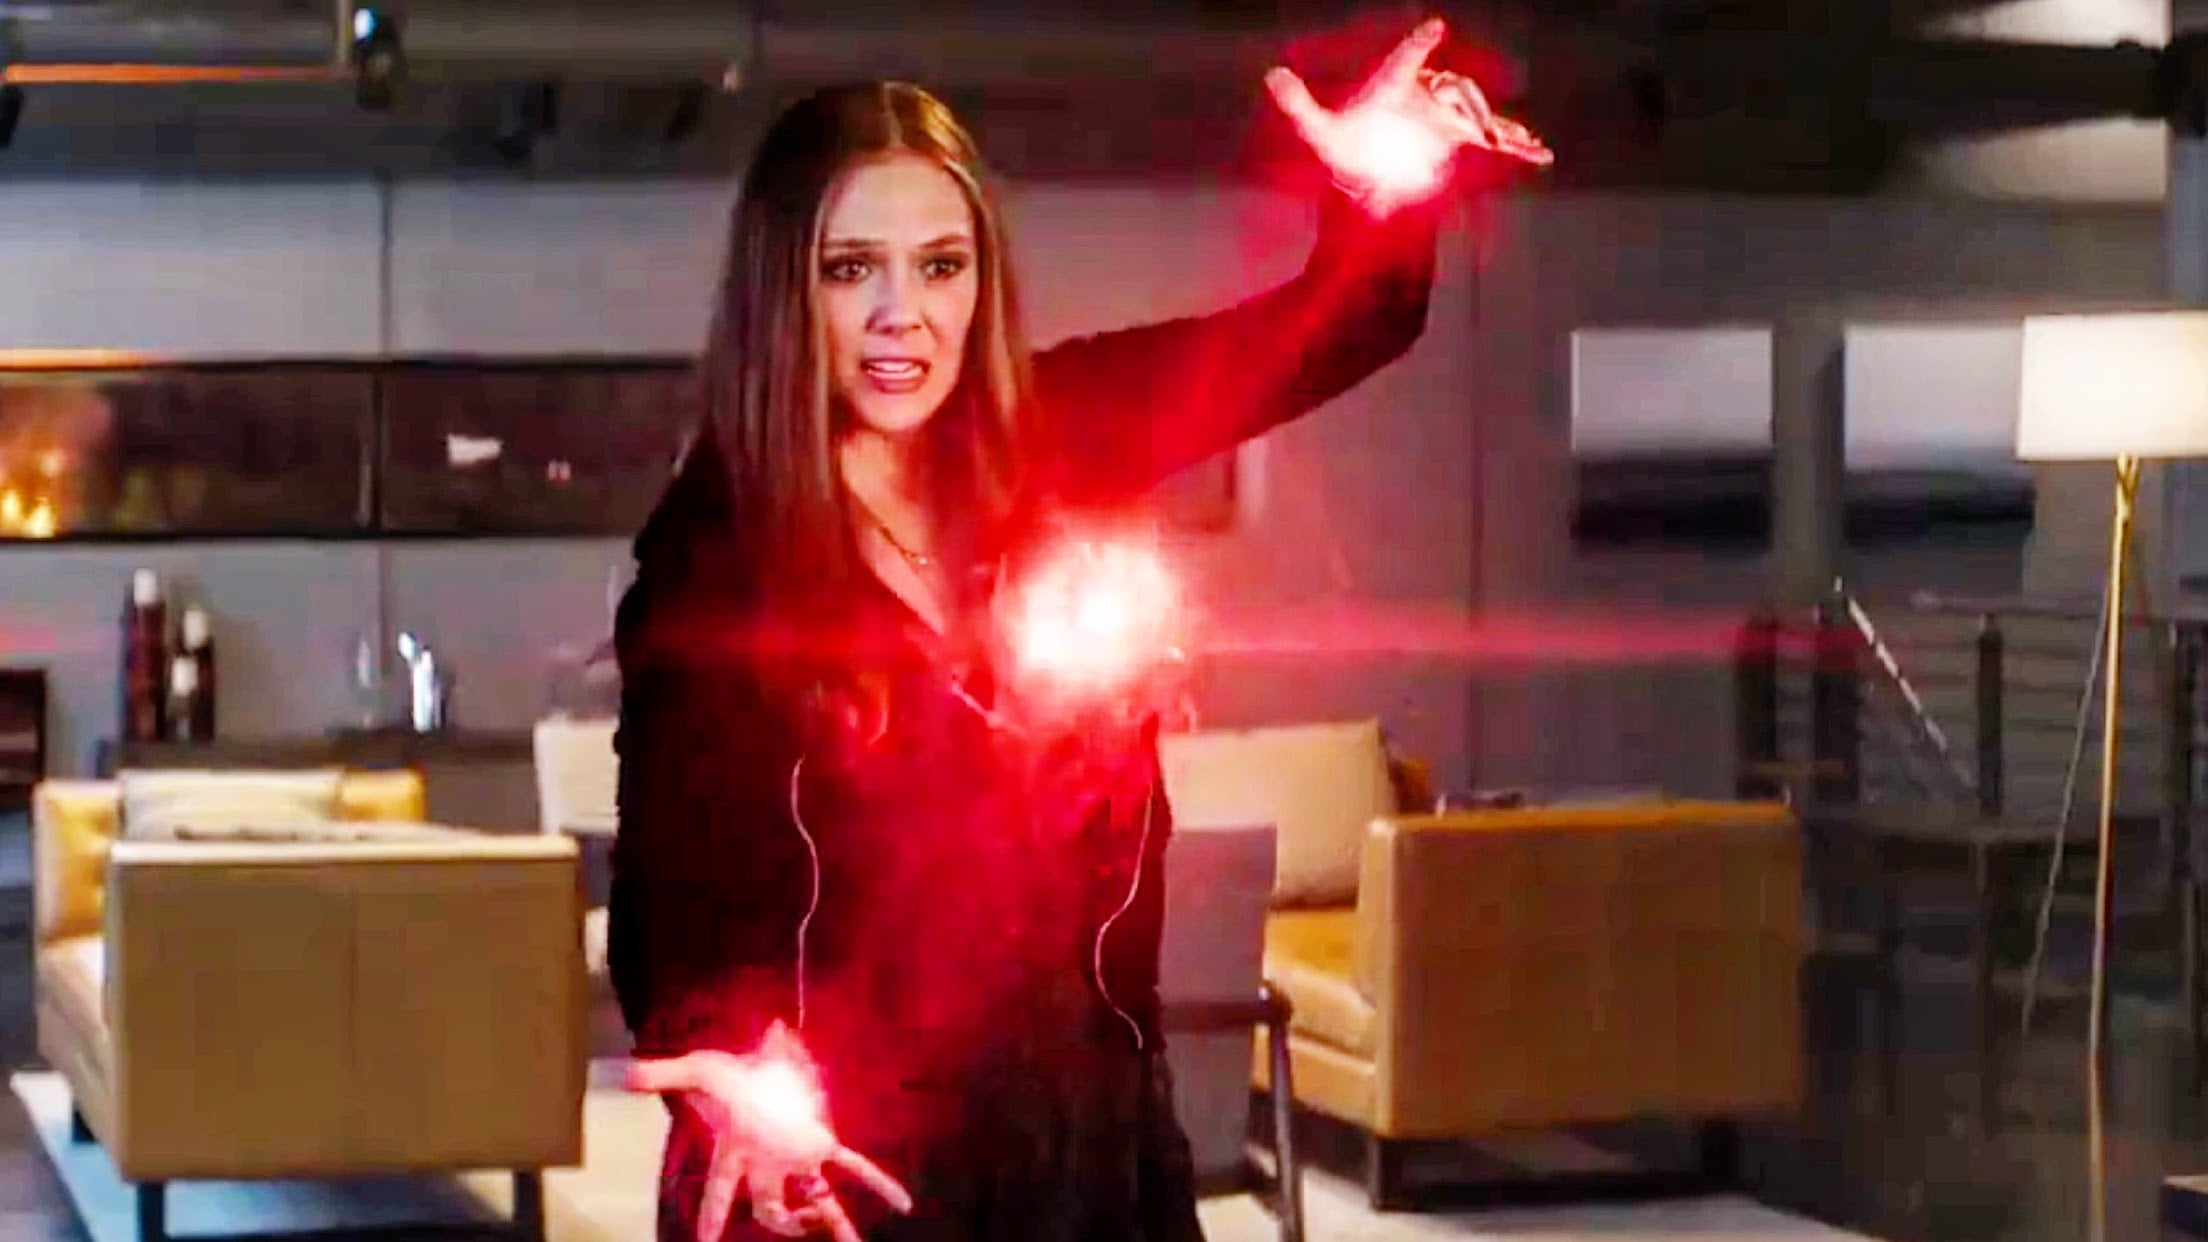 Elizabeth-Olsen-Scarlet-Witch-Civil-War2